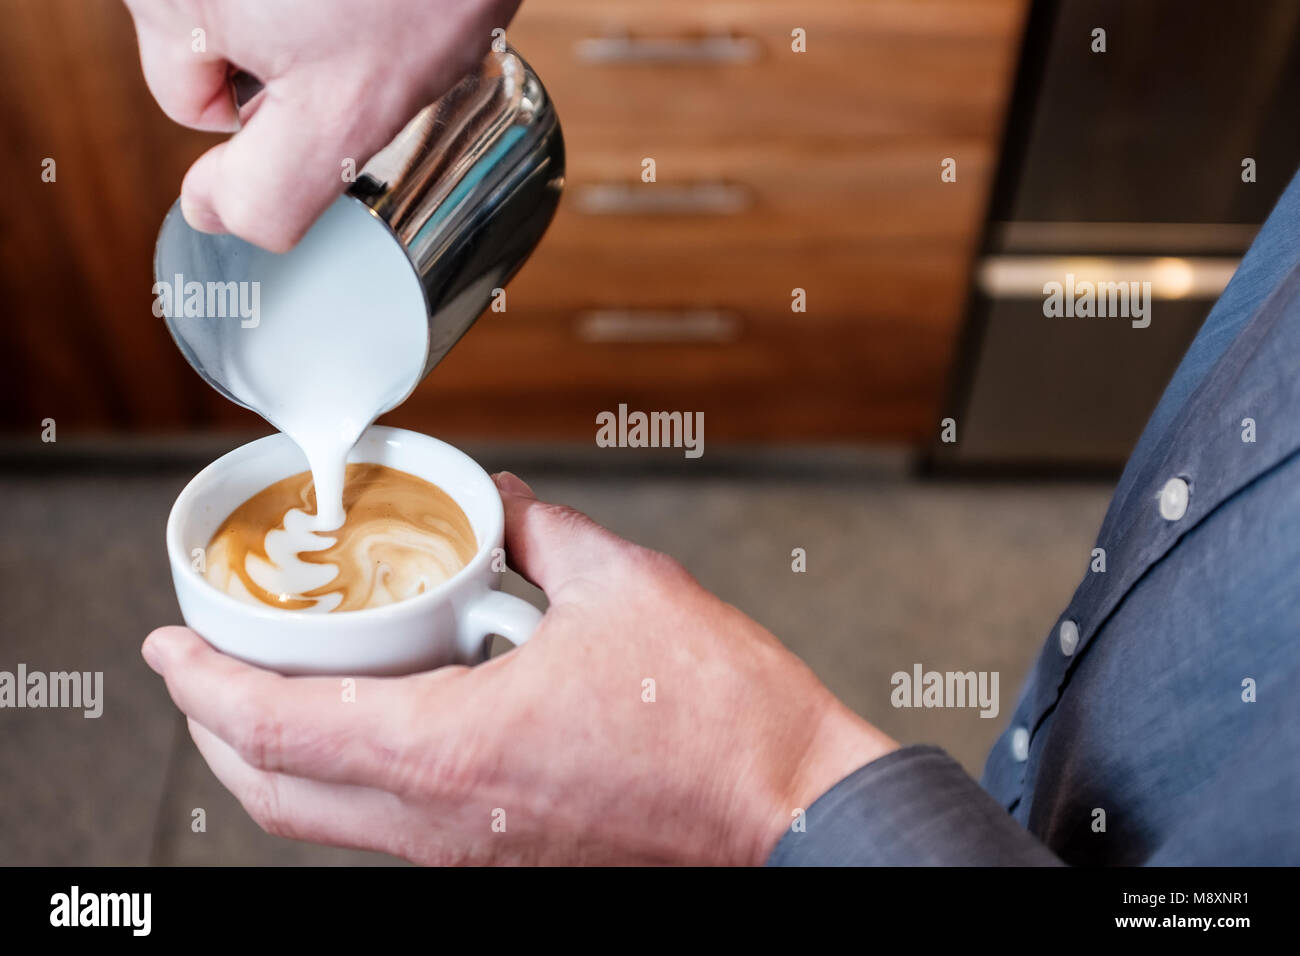 Professional barista pouring steamed milk from stainless steel tumbler into coffee cup making latte art on cappuccino Stock Photo